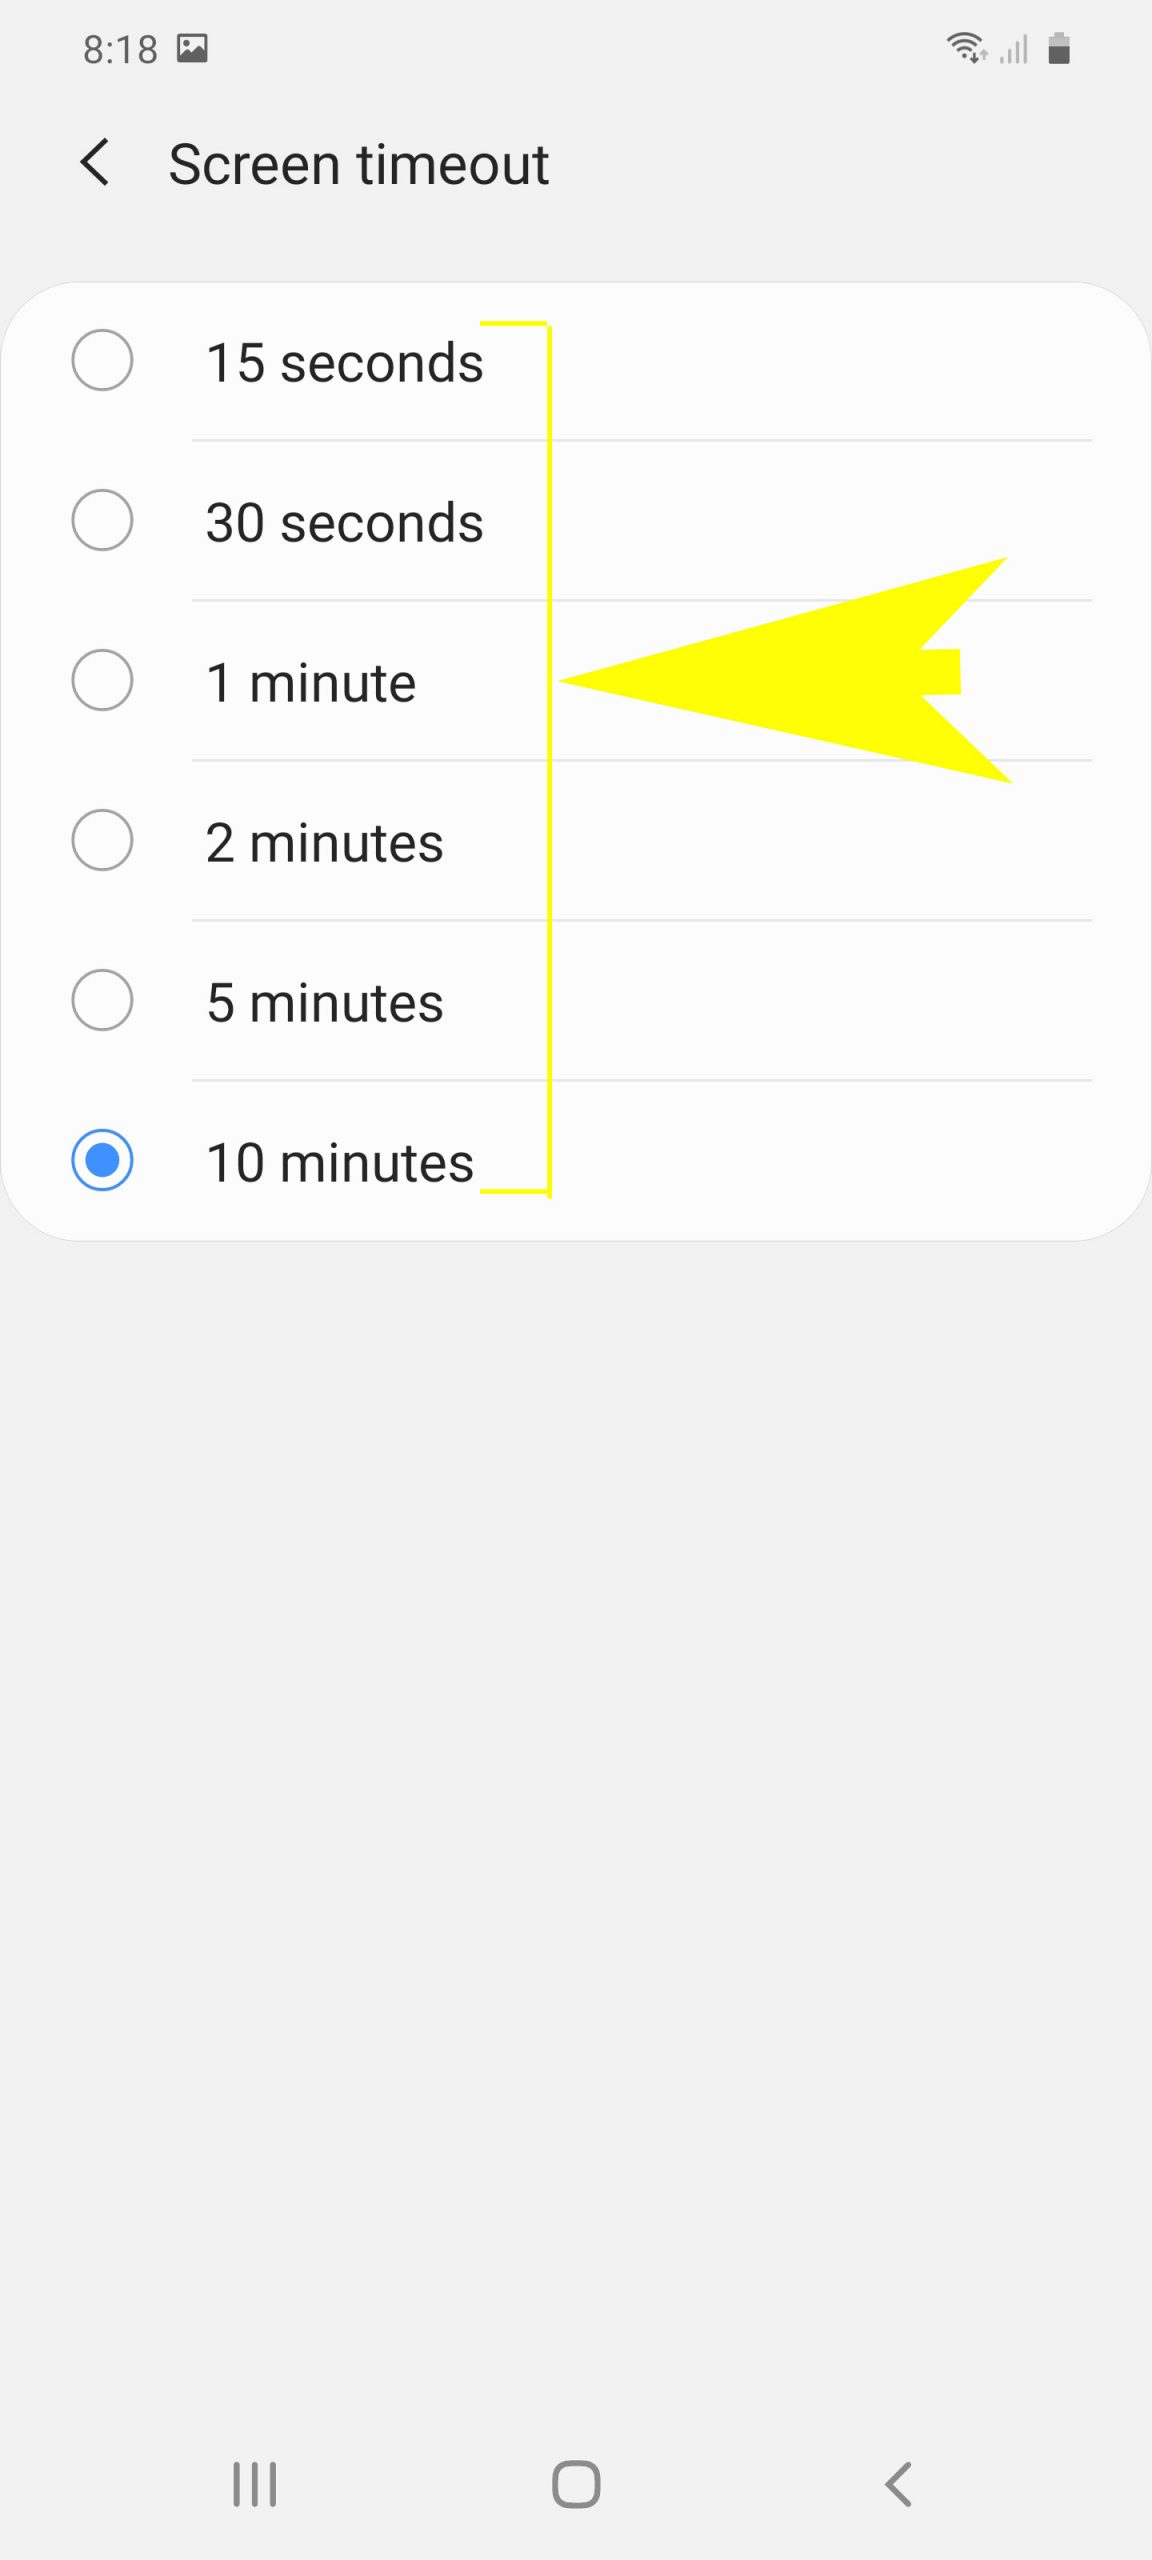 galaxy s20 screen timeout and brightness - idle time